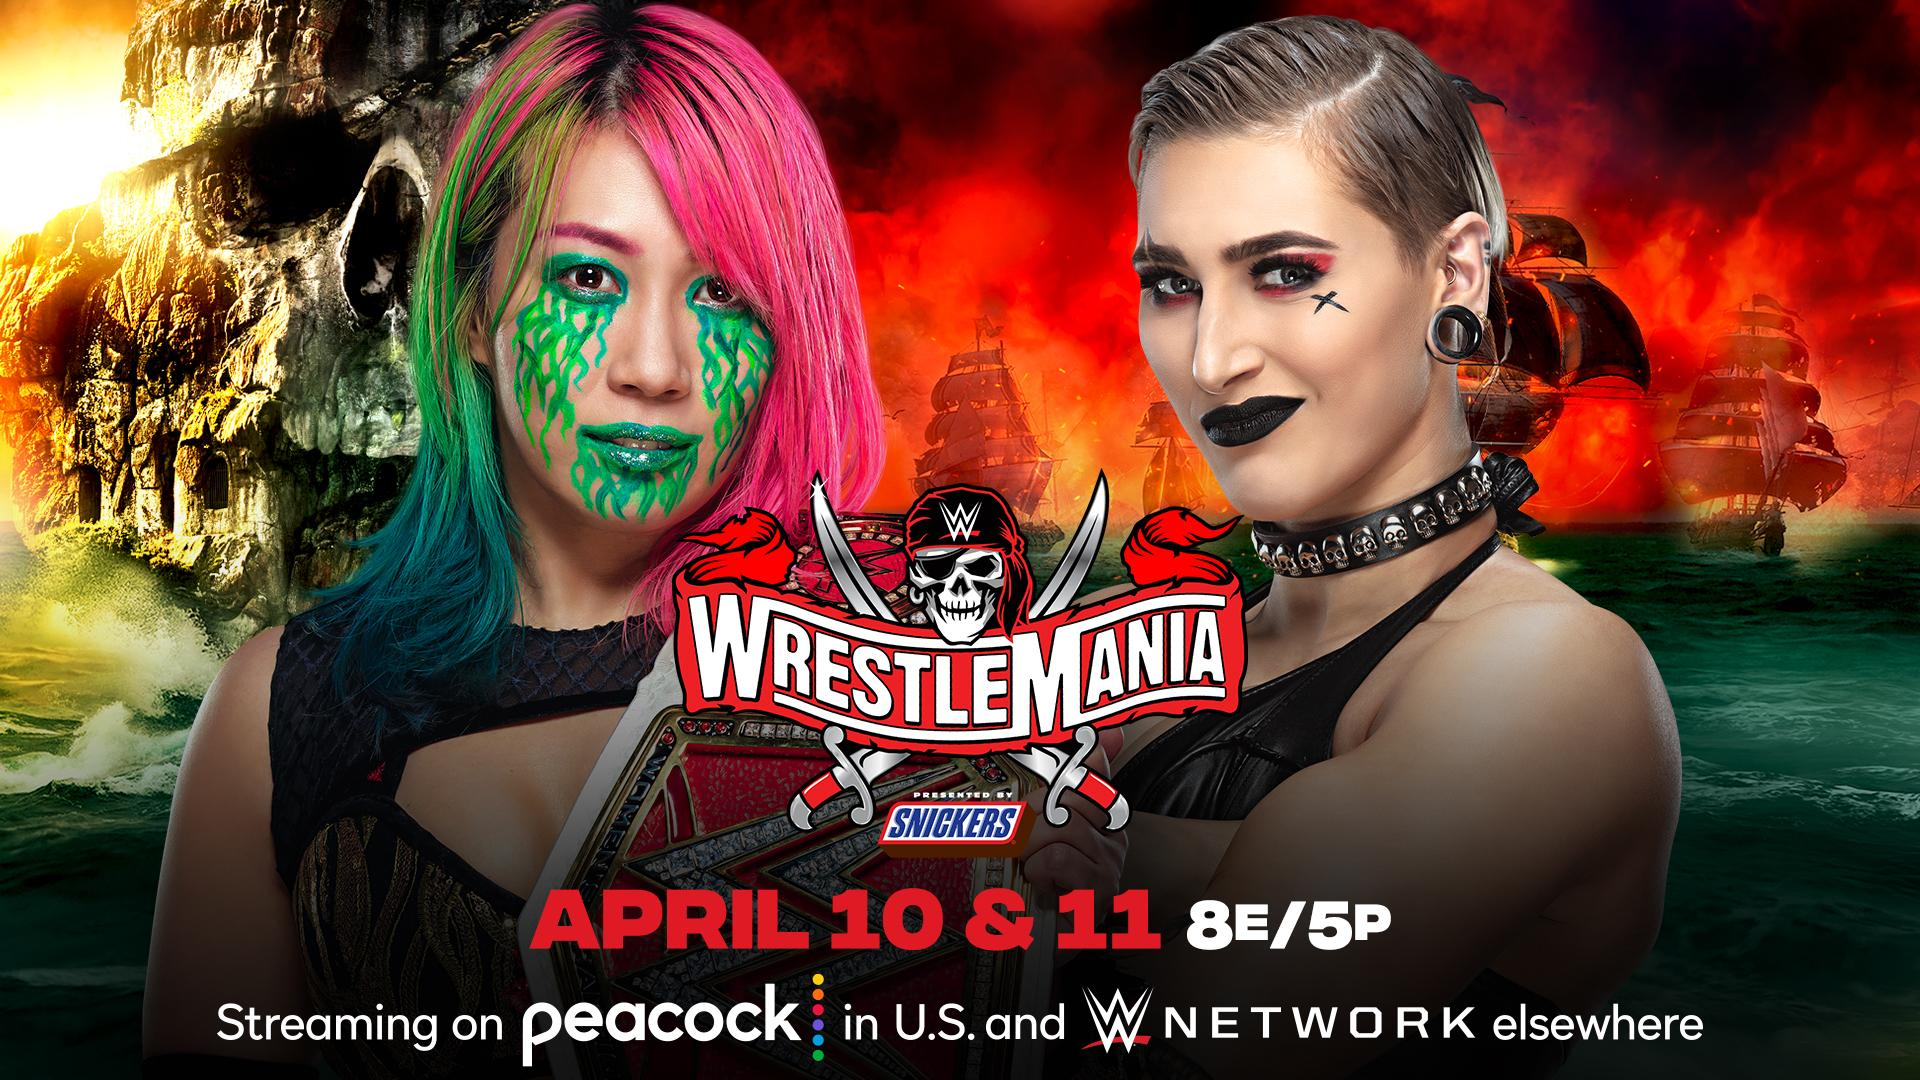 Rhea Ripley vs. Asuka announced for WrestleMania 37